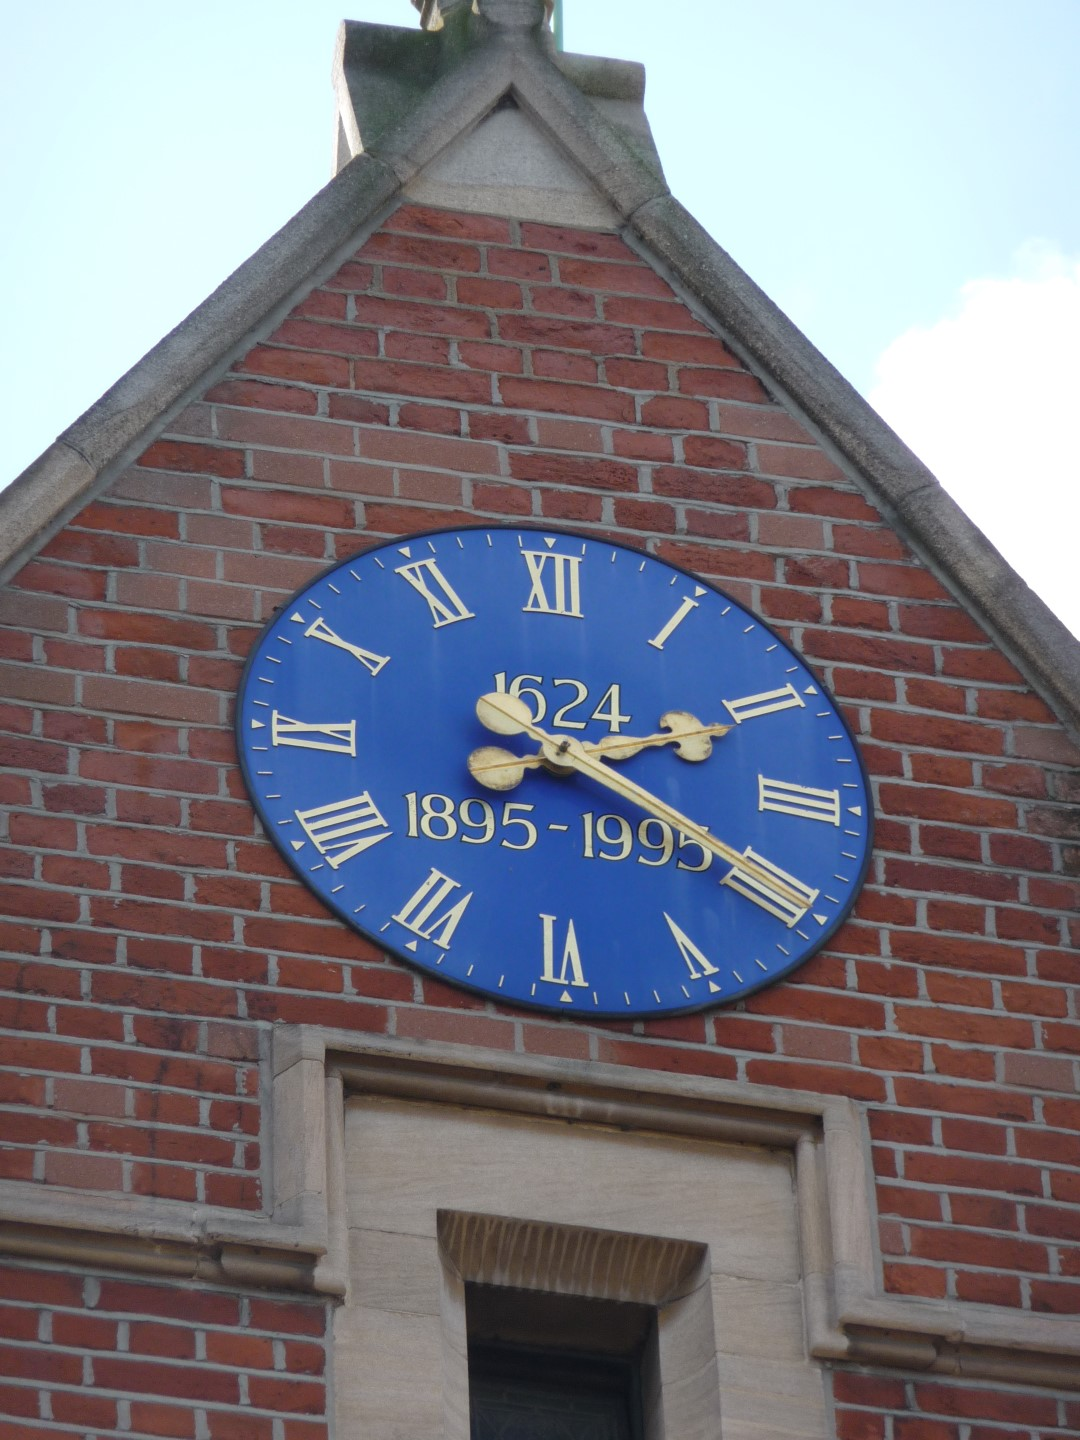 School clock with dates on it